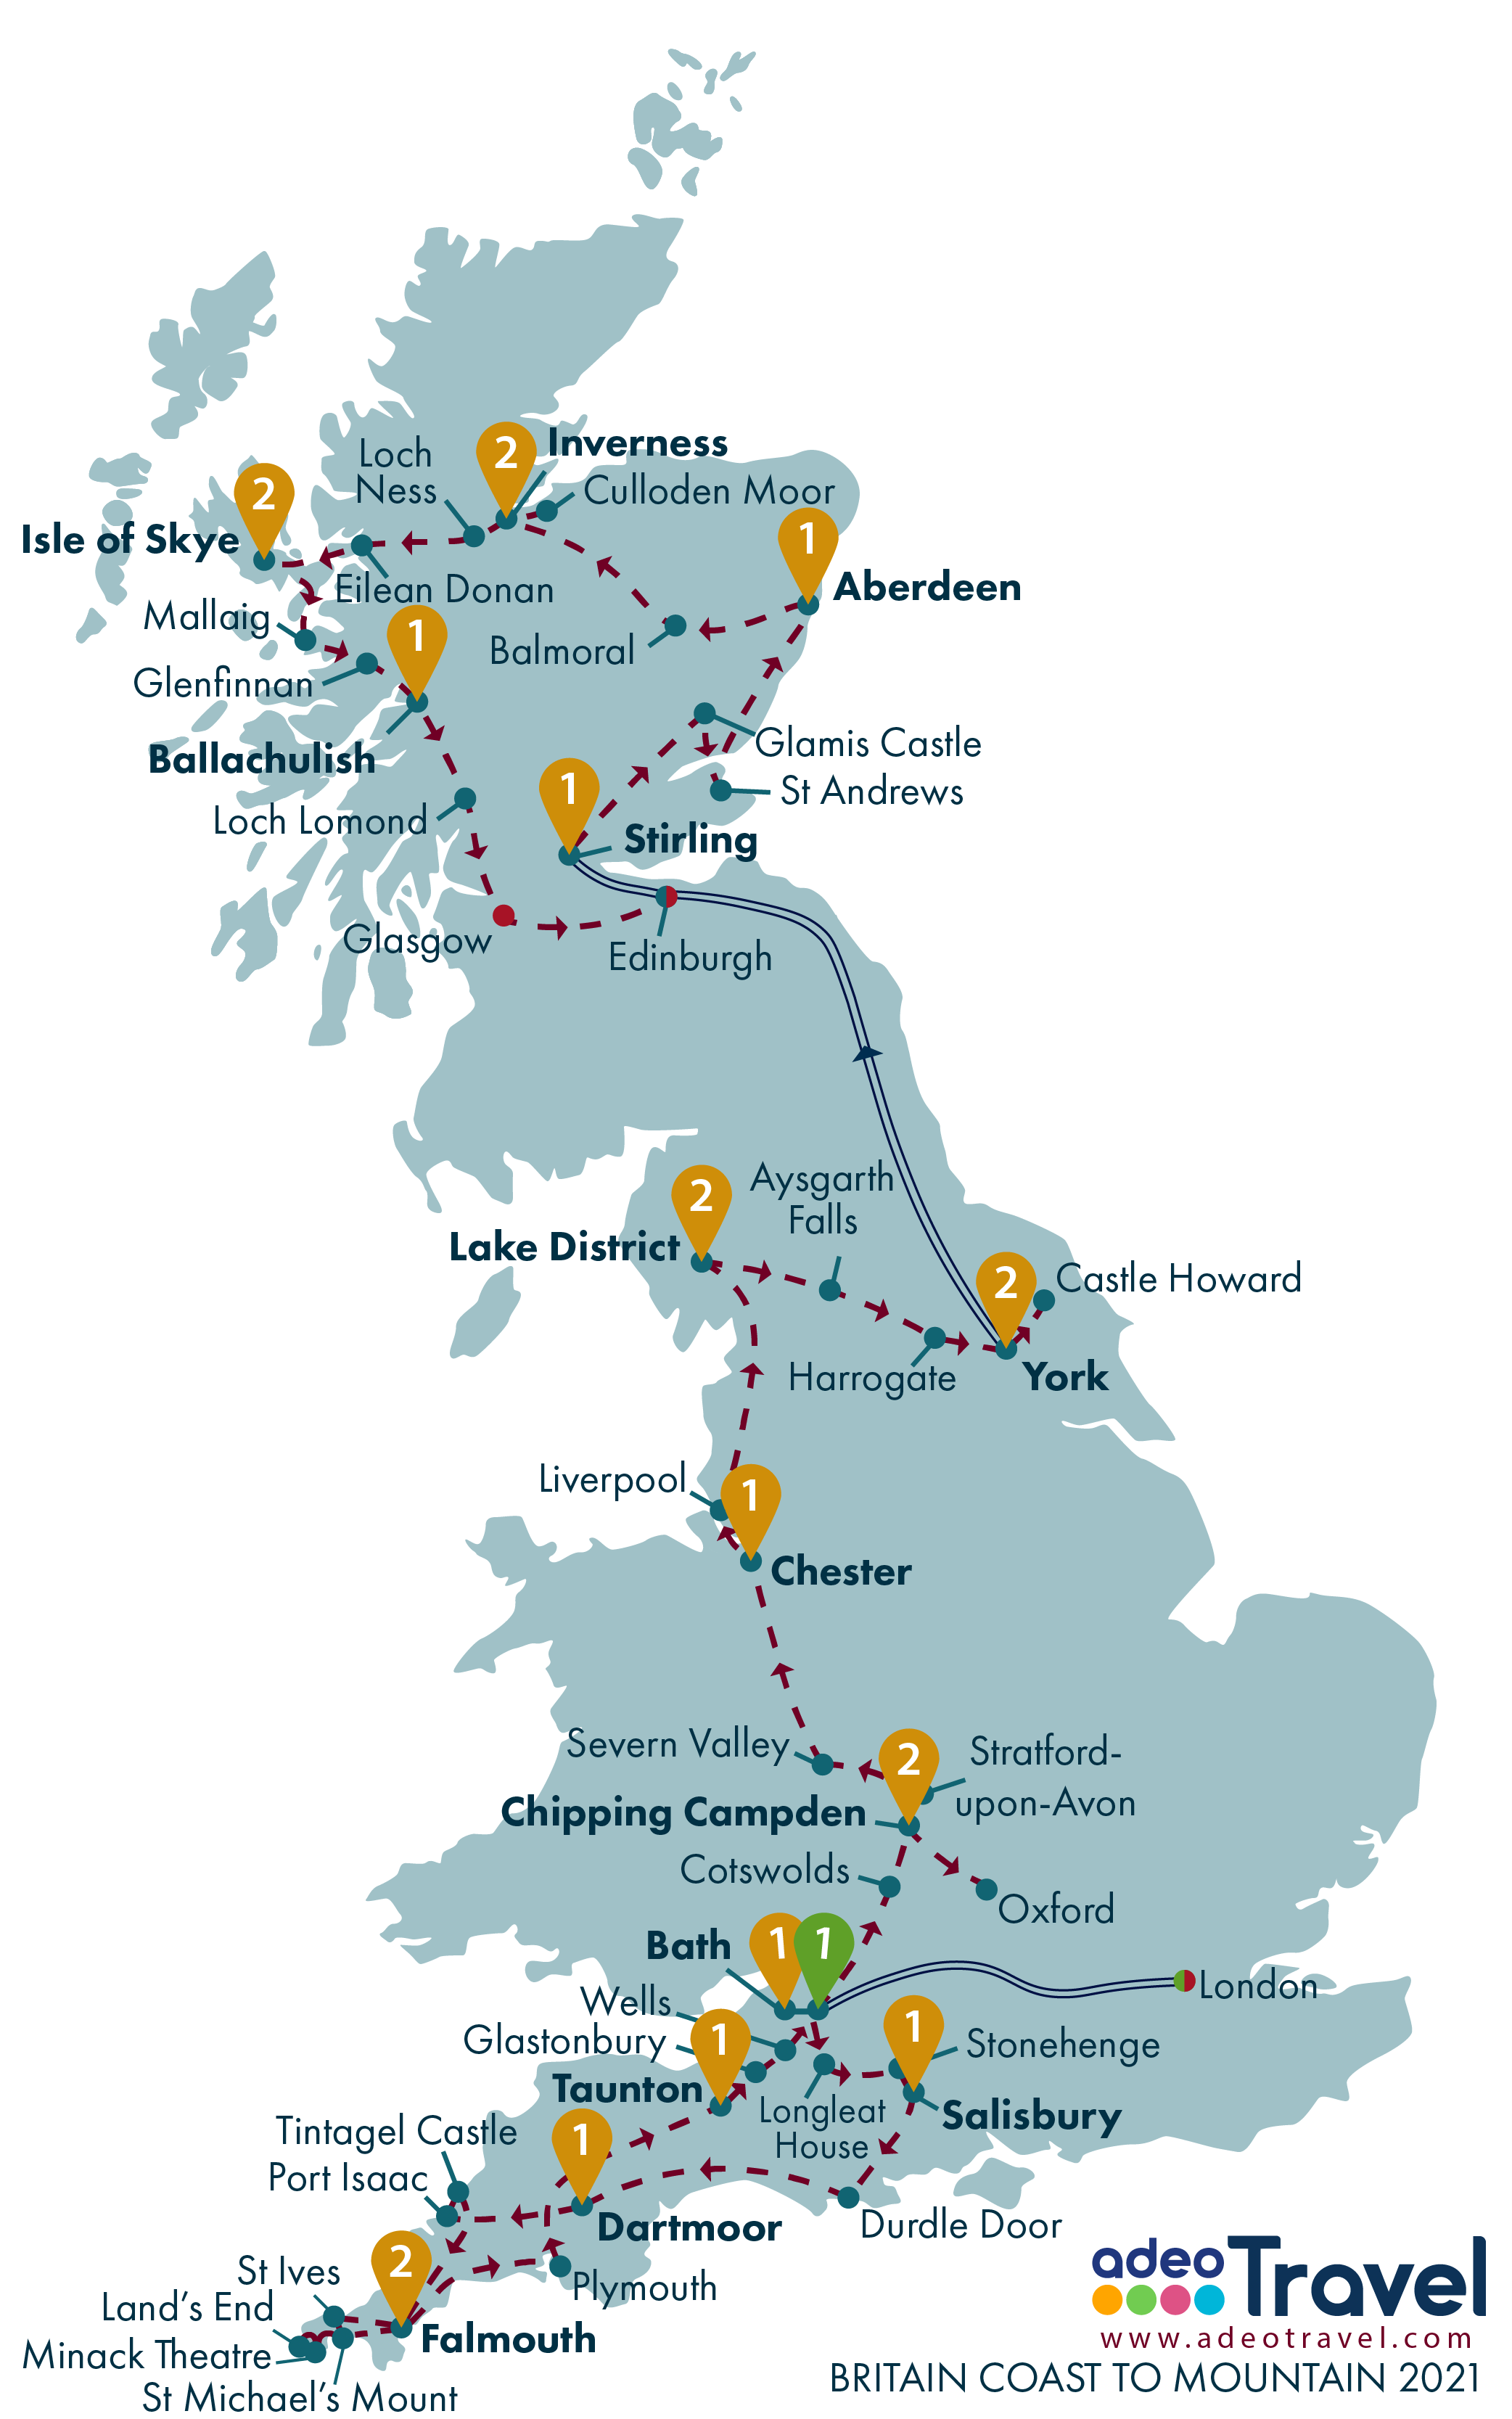 Map - Britain Coast to Mountain 2021